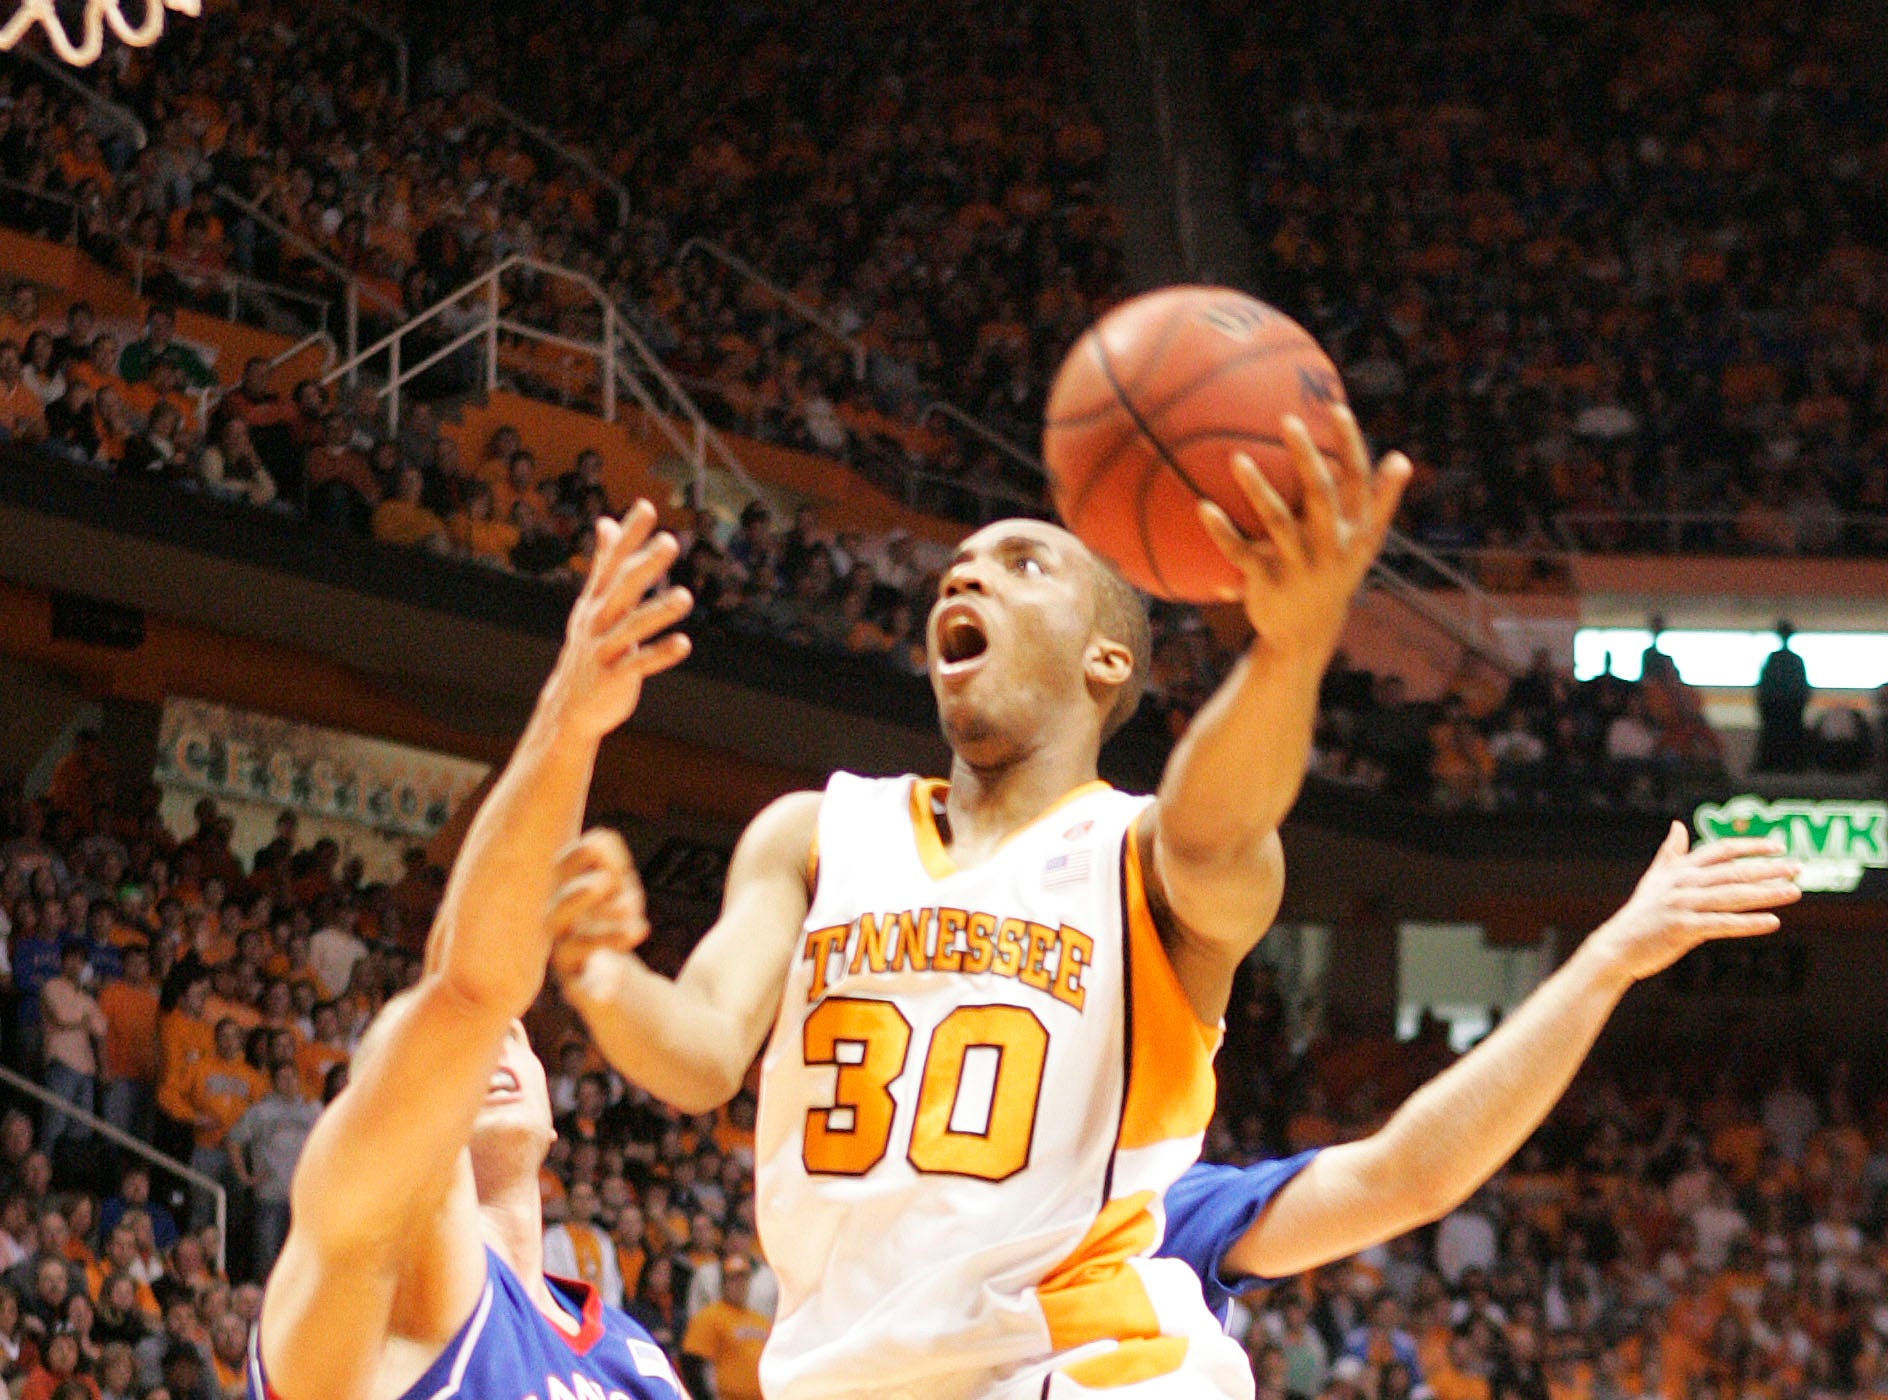 Tennessee's J.P. Prince (30) drives to the basket against Kansas'  Cole Aldrich (45) during the first half of an NCAA college basketball game Sunday, Jan. 10, 2010 in Knoxville, Tenn. (AP Photo/Lisa Norman-Hudson)